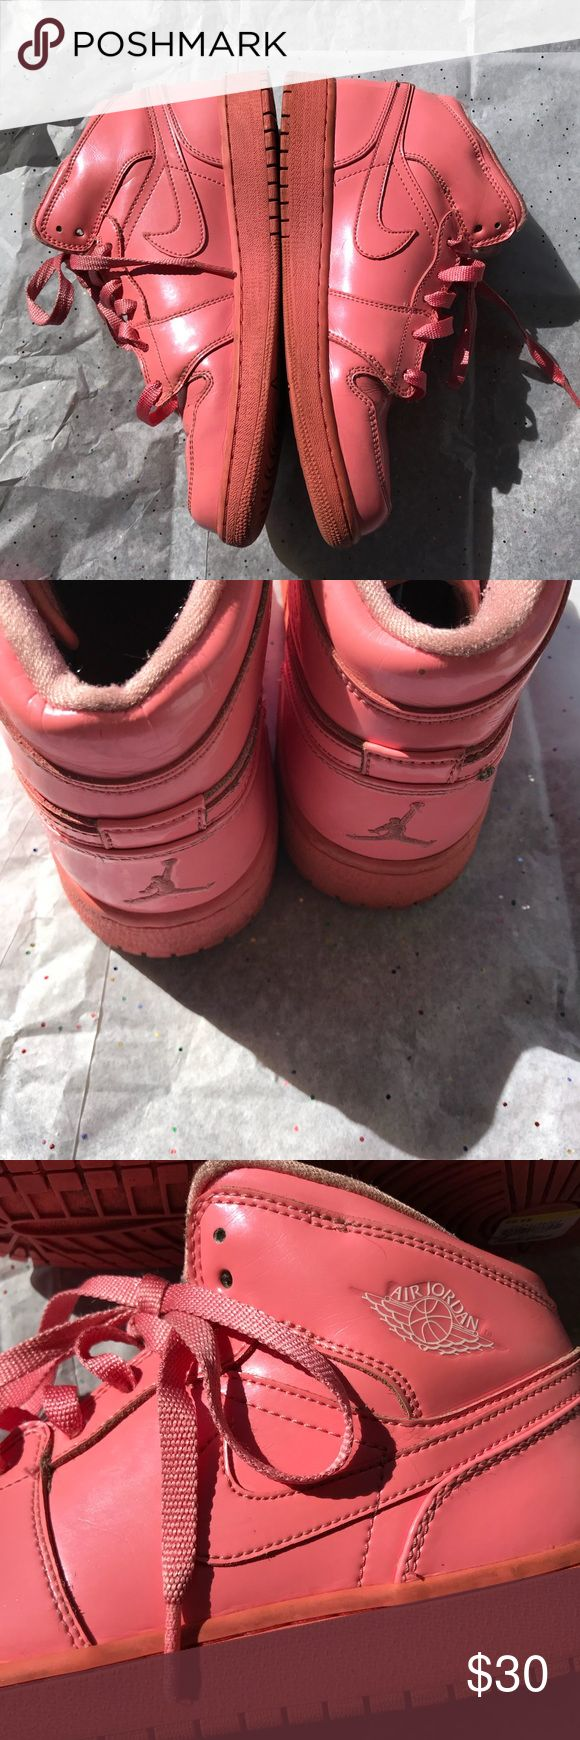 Women's pink nike air Jordan shoes size 9 Brand- Jordan- good used condition women's all pink Jordan tennis shoes size 9 (Youth7) solid pink with Jordan Logo on the tongue, heels, and sides. Good used condition- creasing at the toes and one tiny scuff mark on the side. Over all in decent condition and has tons of life left and are so girly and cute! Jordan Shoes Sneakers